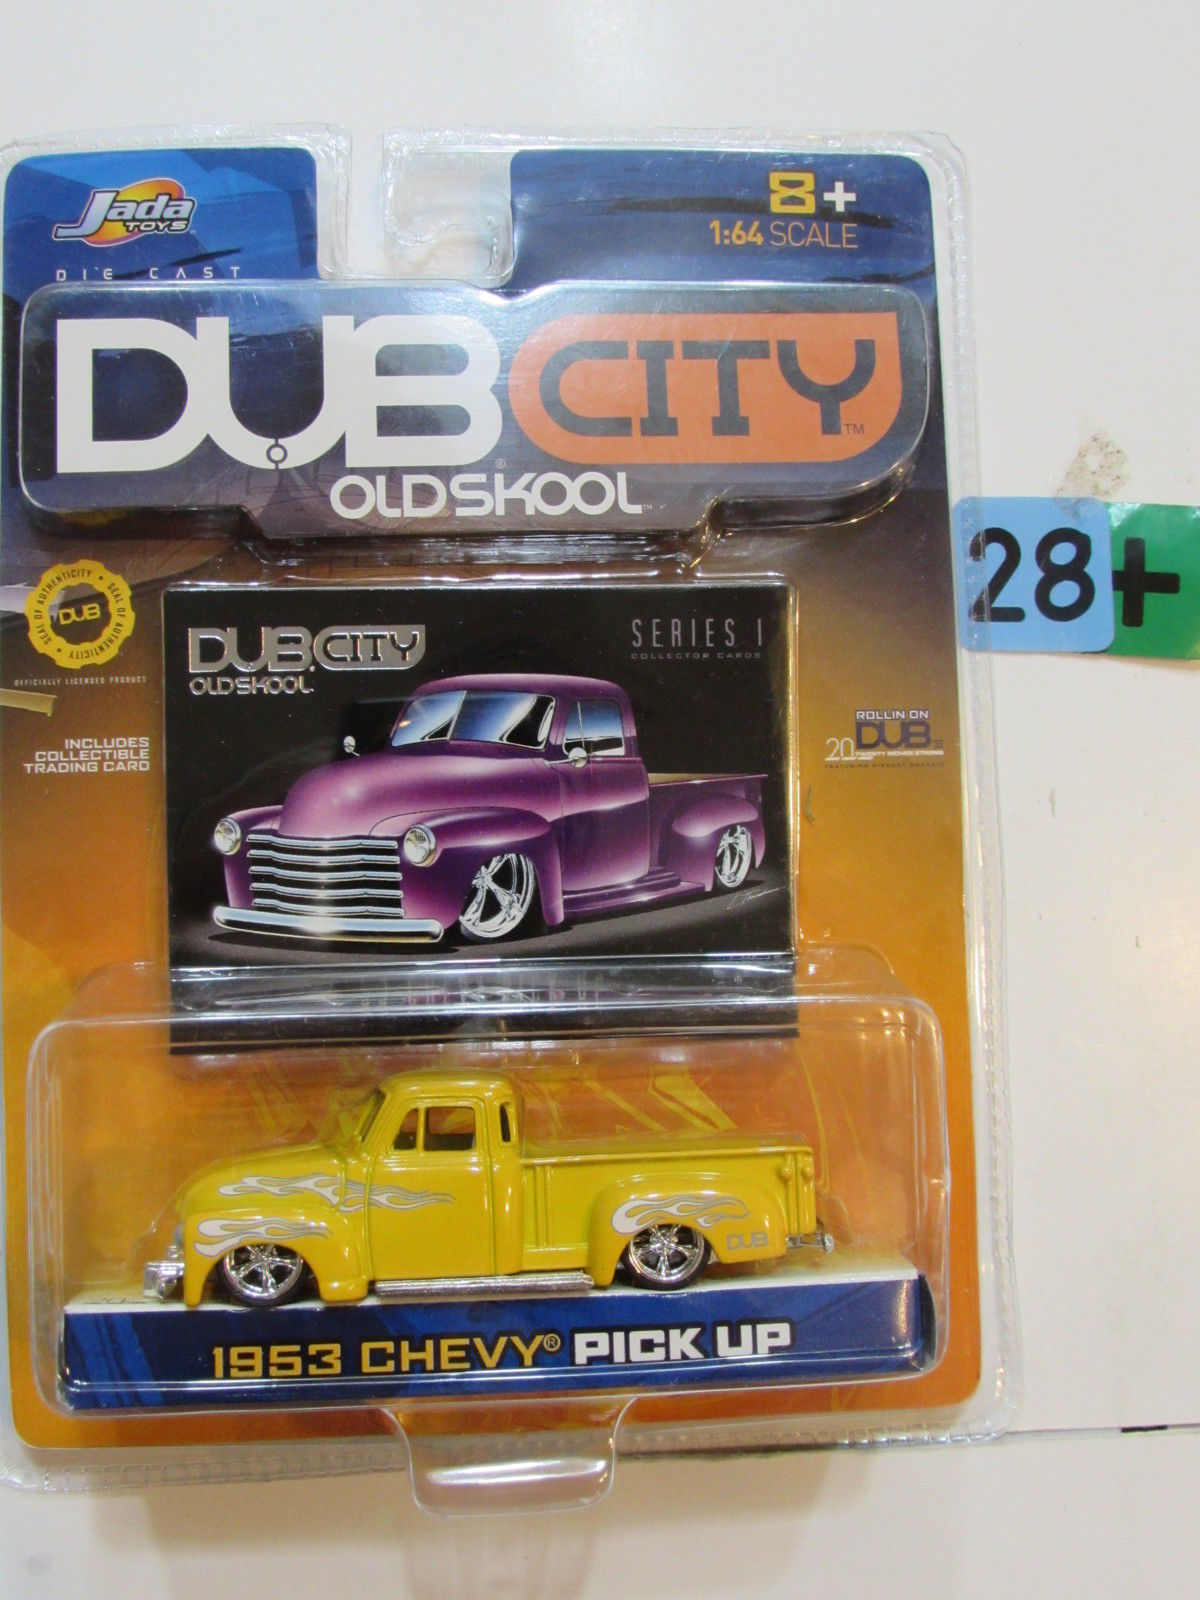 JADA DUB CITY OLD SKOOL - 1953 CHEVY PICK UP YELLOW SERIES 1